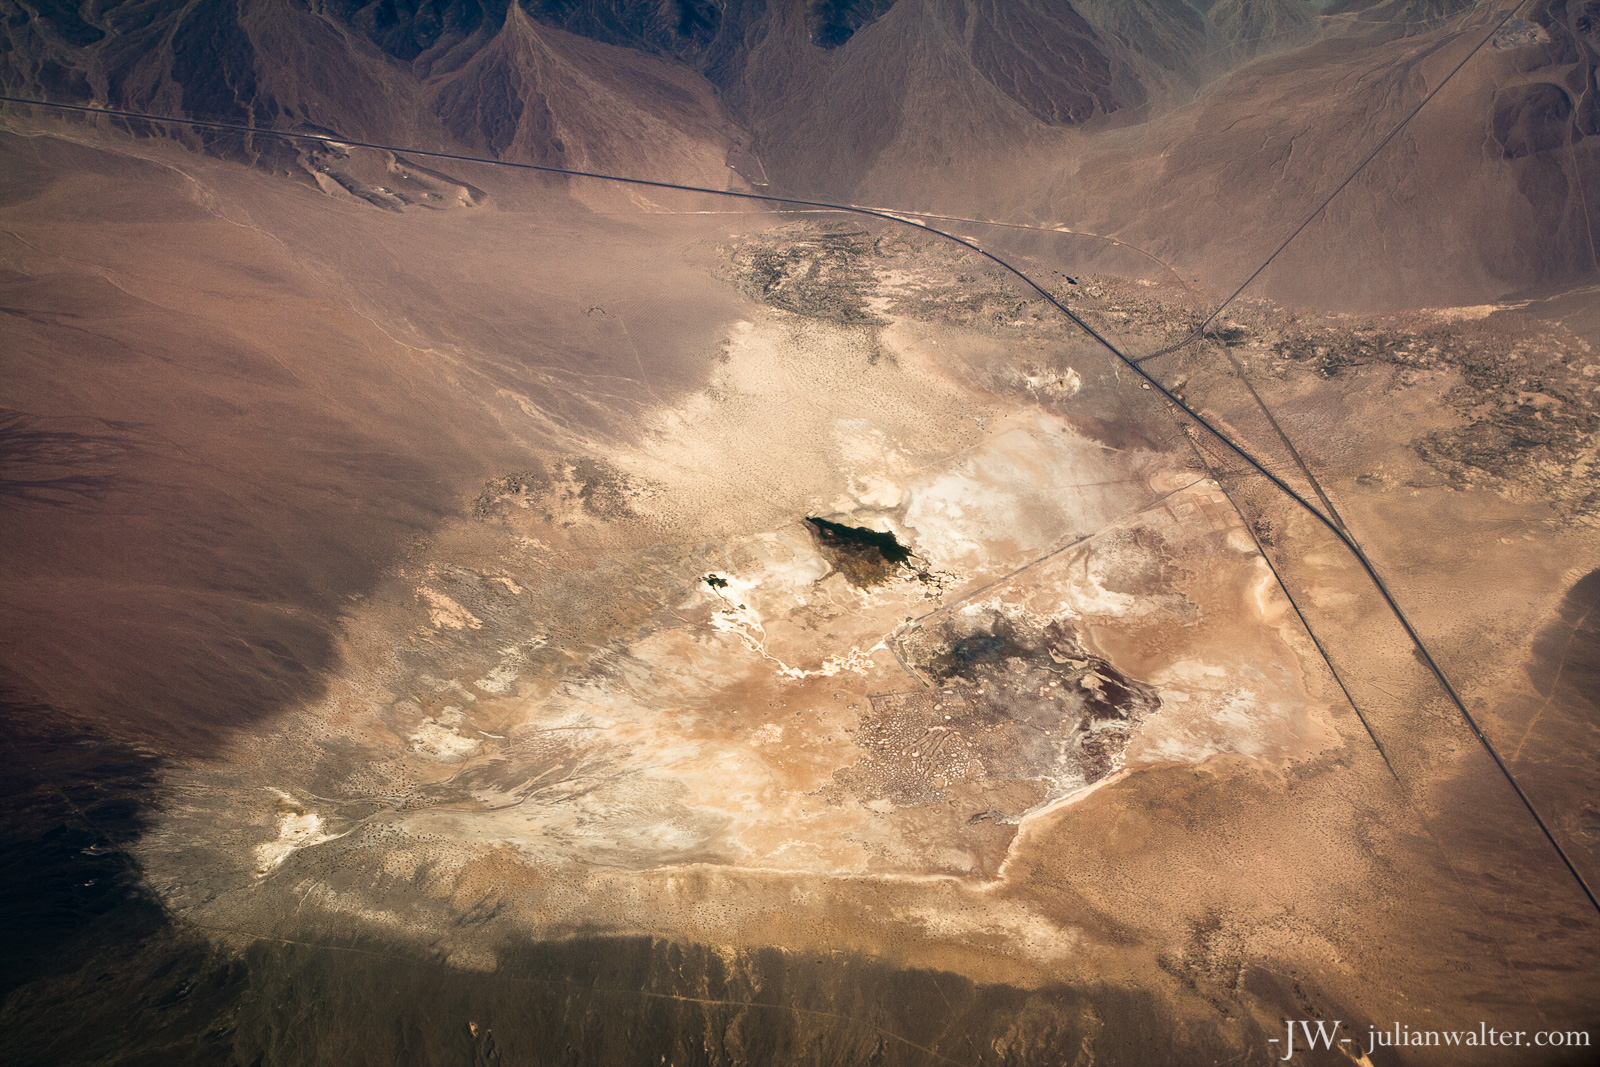 Julian Walter Photography - The Wild West from Above